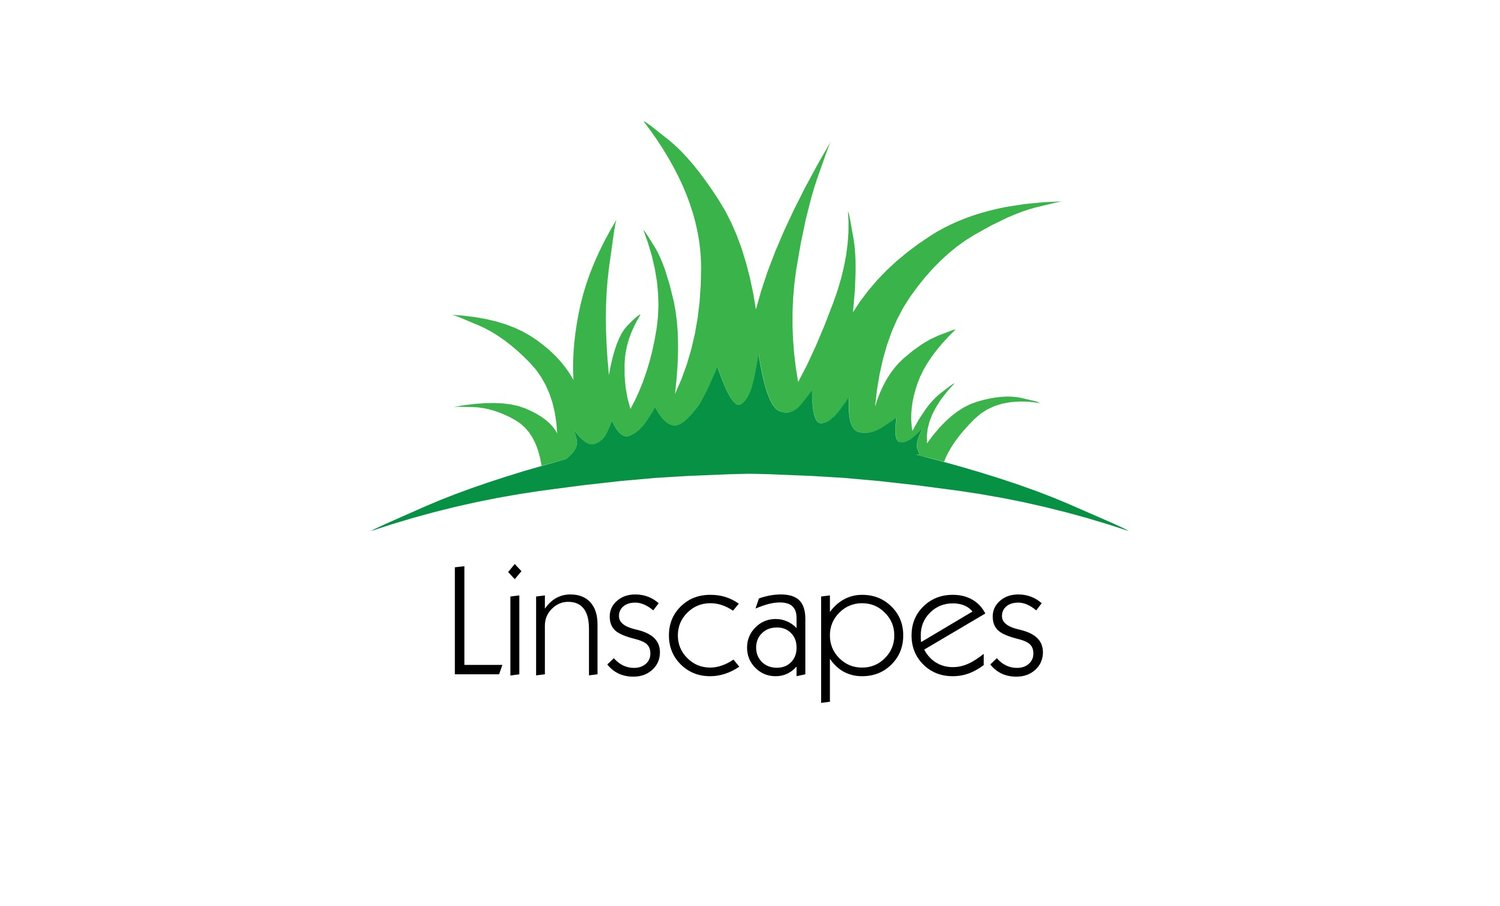 Linscapes Ltd